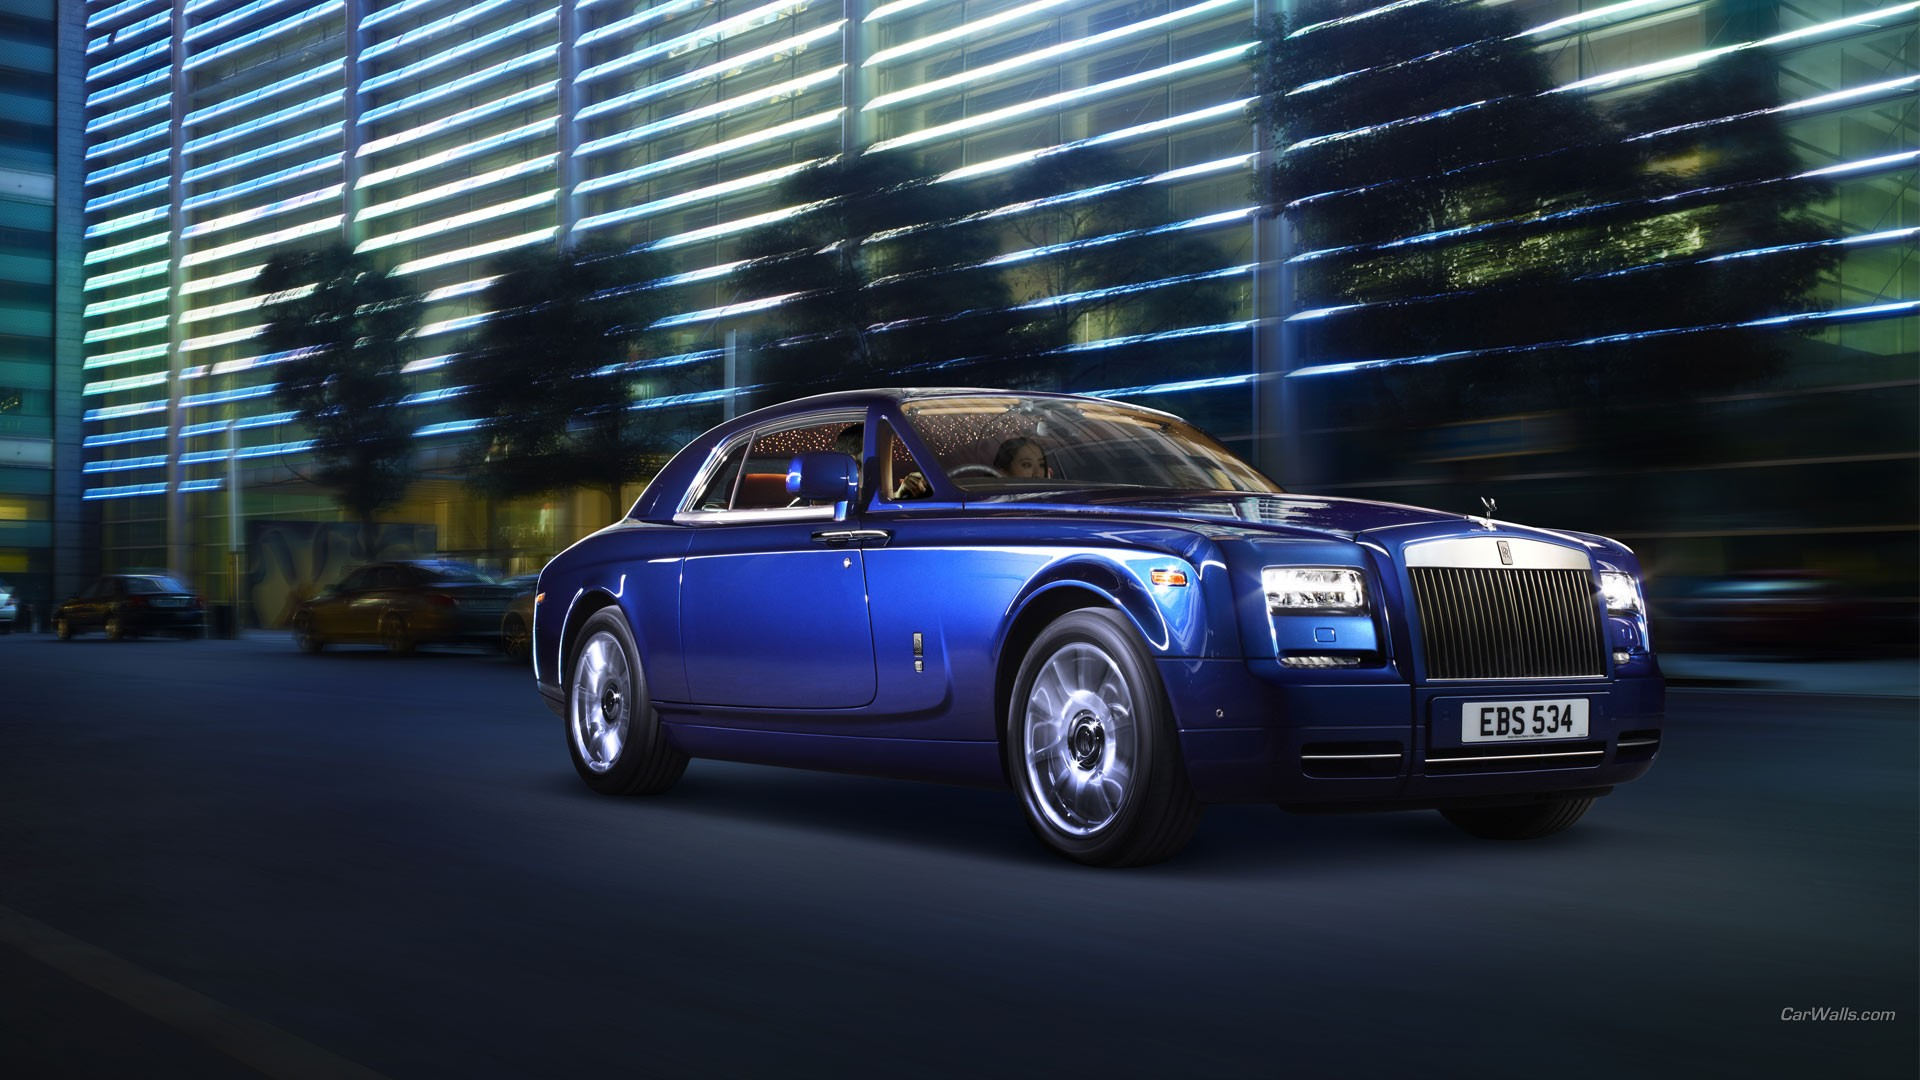 Phantom Car Wallpaper Car Rolls Royce Phantom Blue Cars Wallpapers Hd